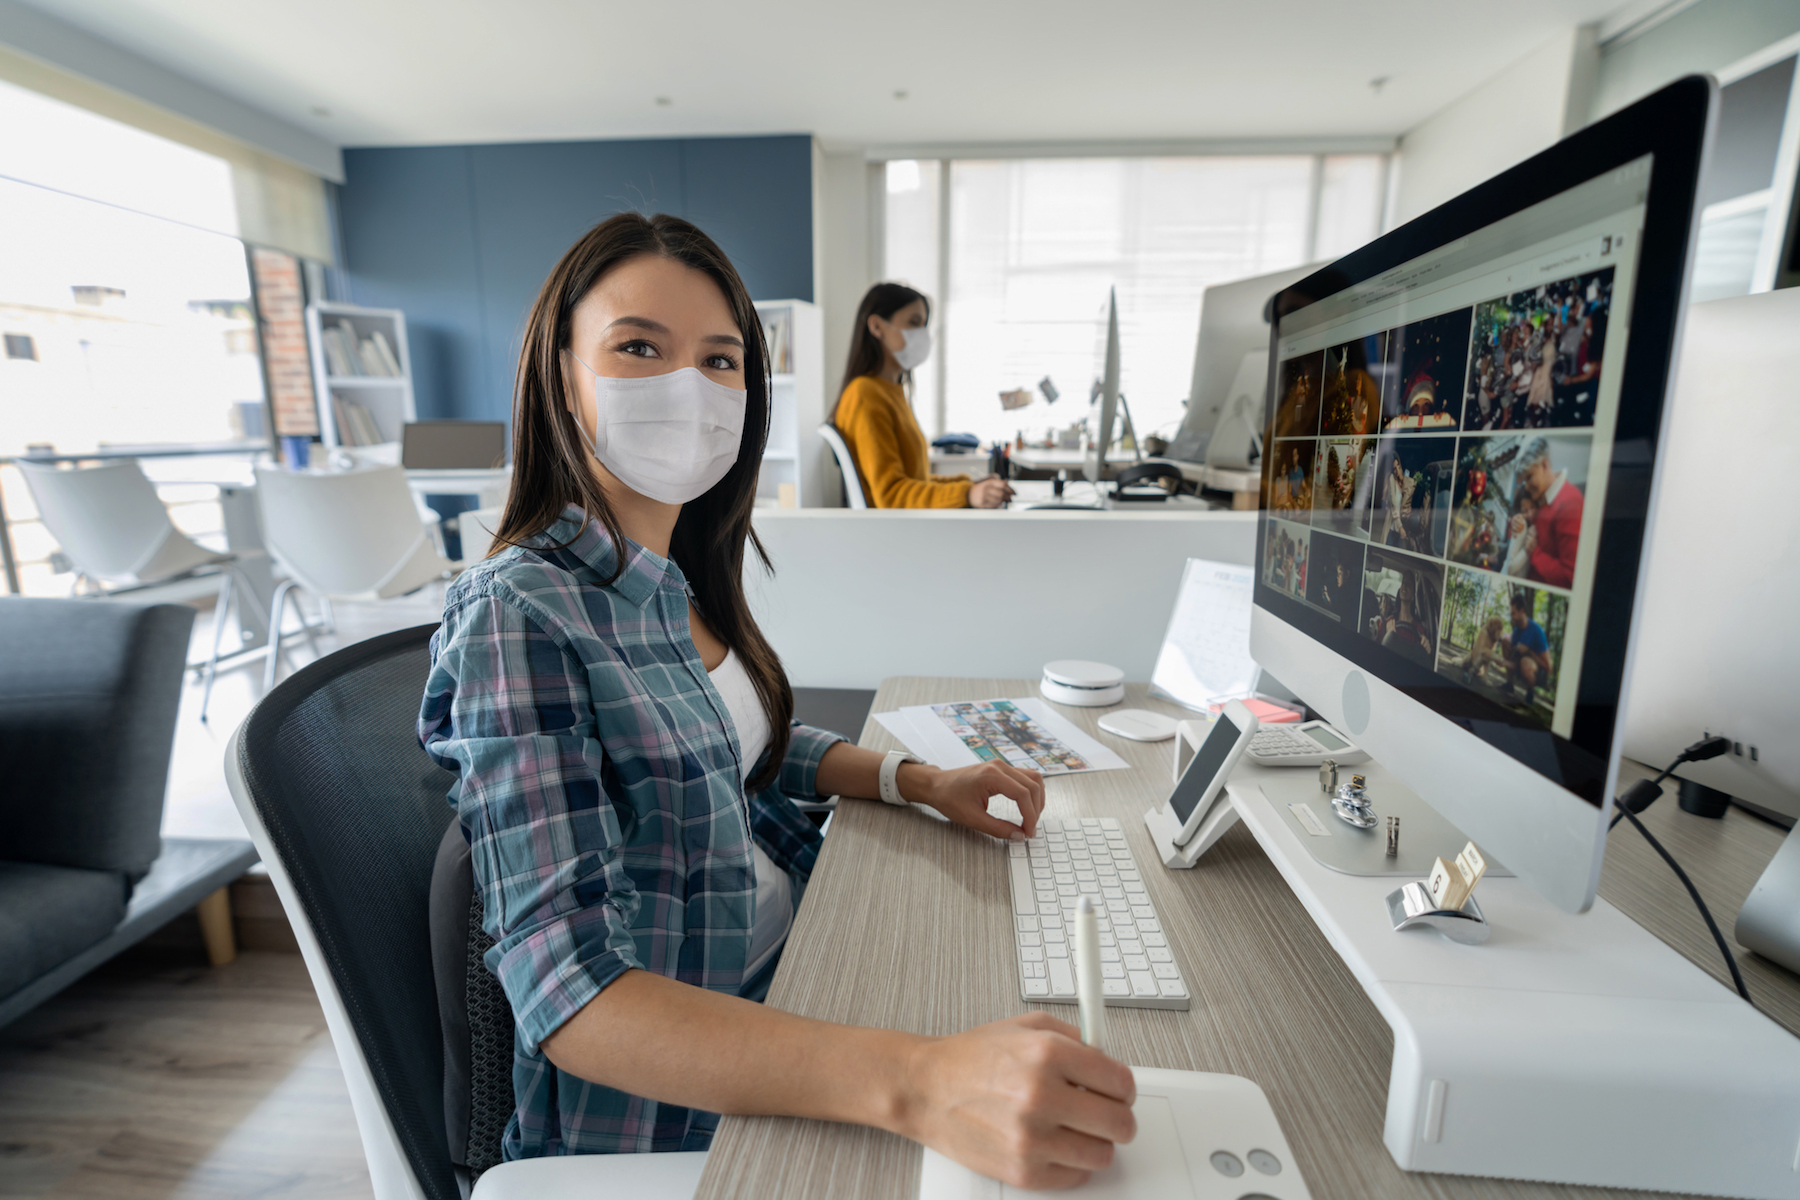 office worker with facemask